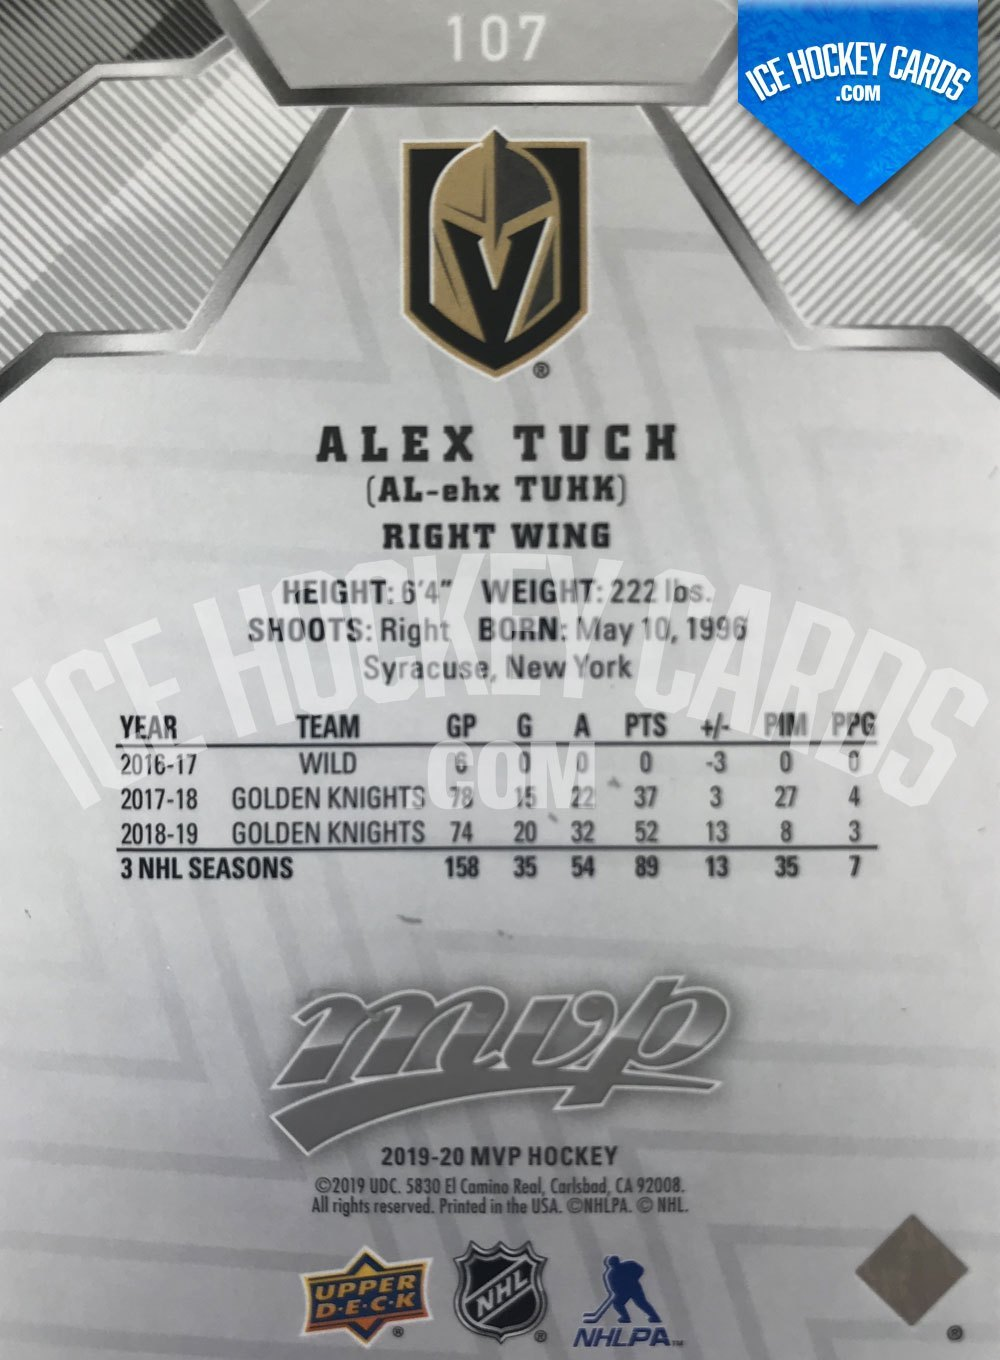 Upper Deck - MVP 19-20 - Alex Tuch MVP Scripts 11 of 25 back